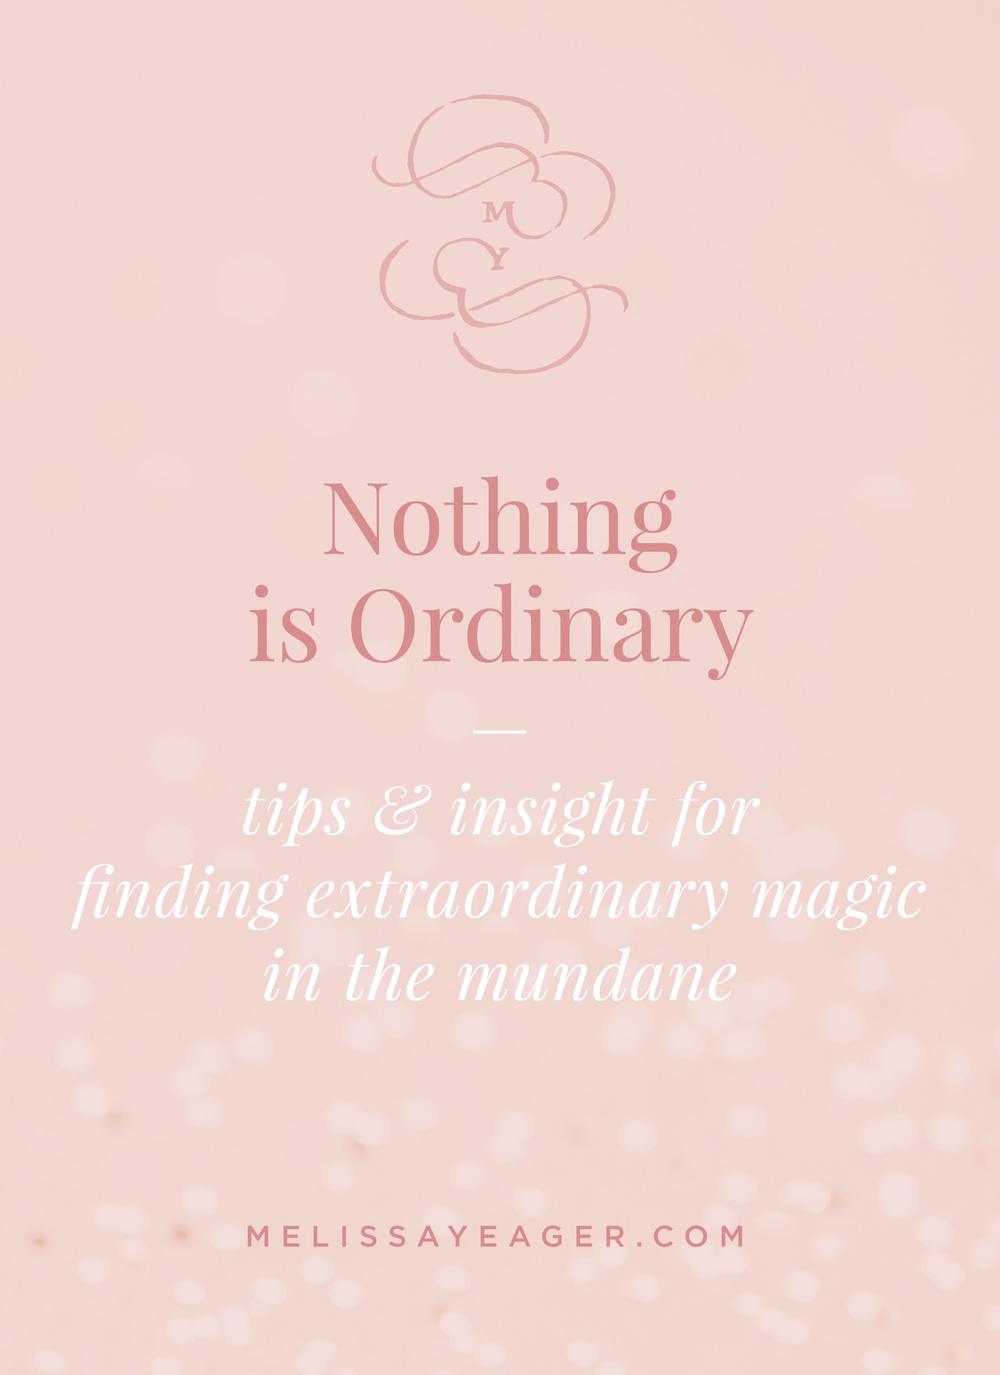 Nothing is Ordinary - tips & insight for finding extraordinary magic in the mundane - Melissa Yeager